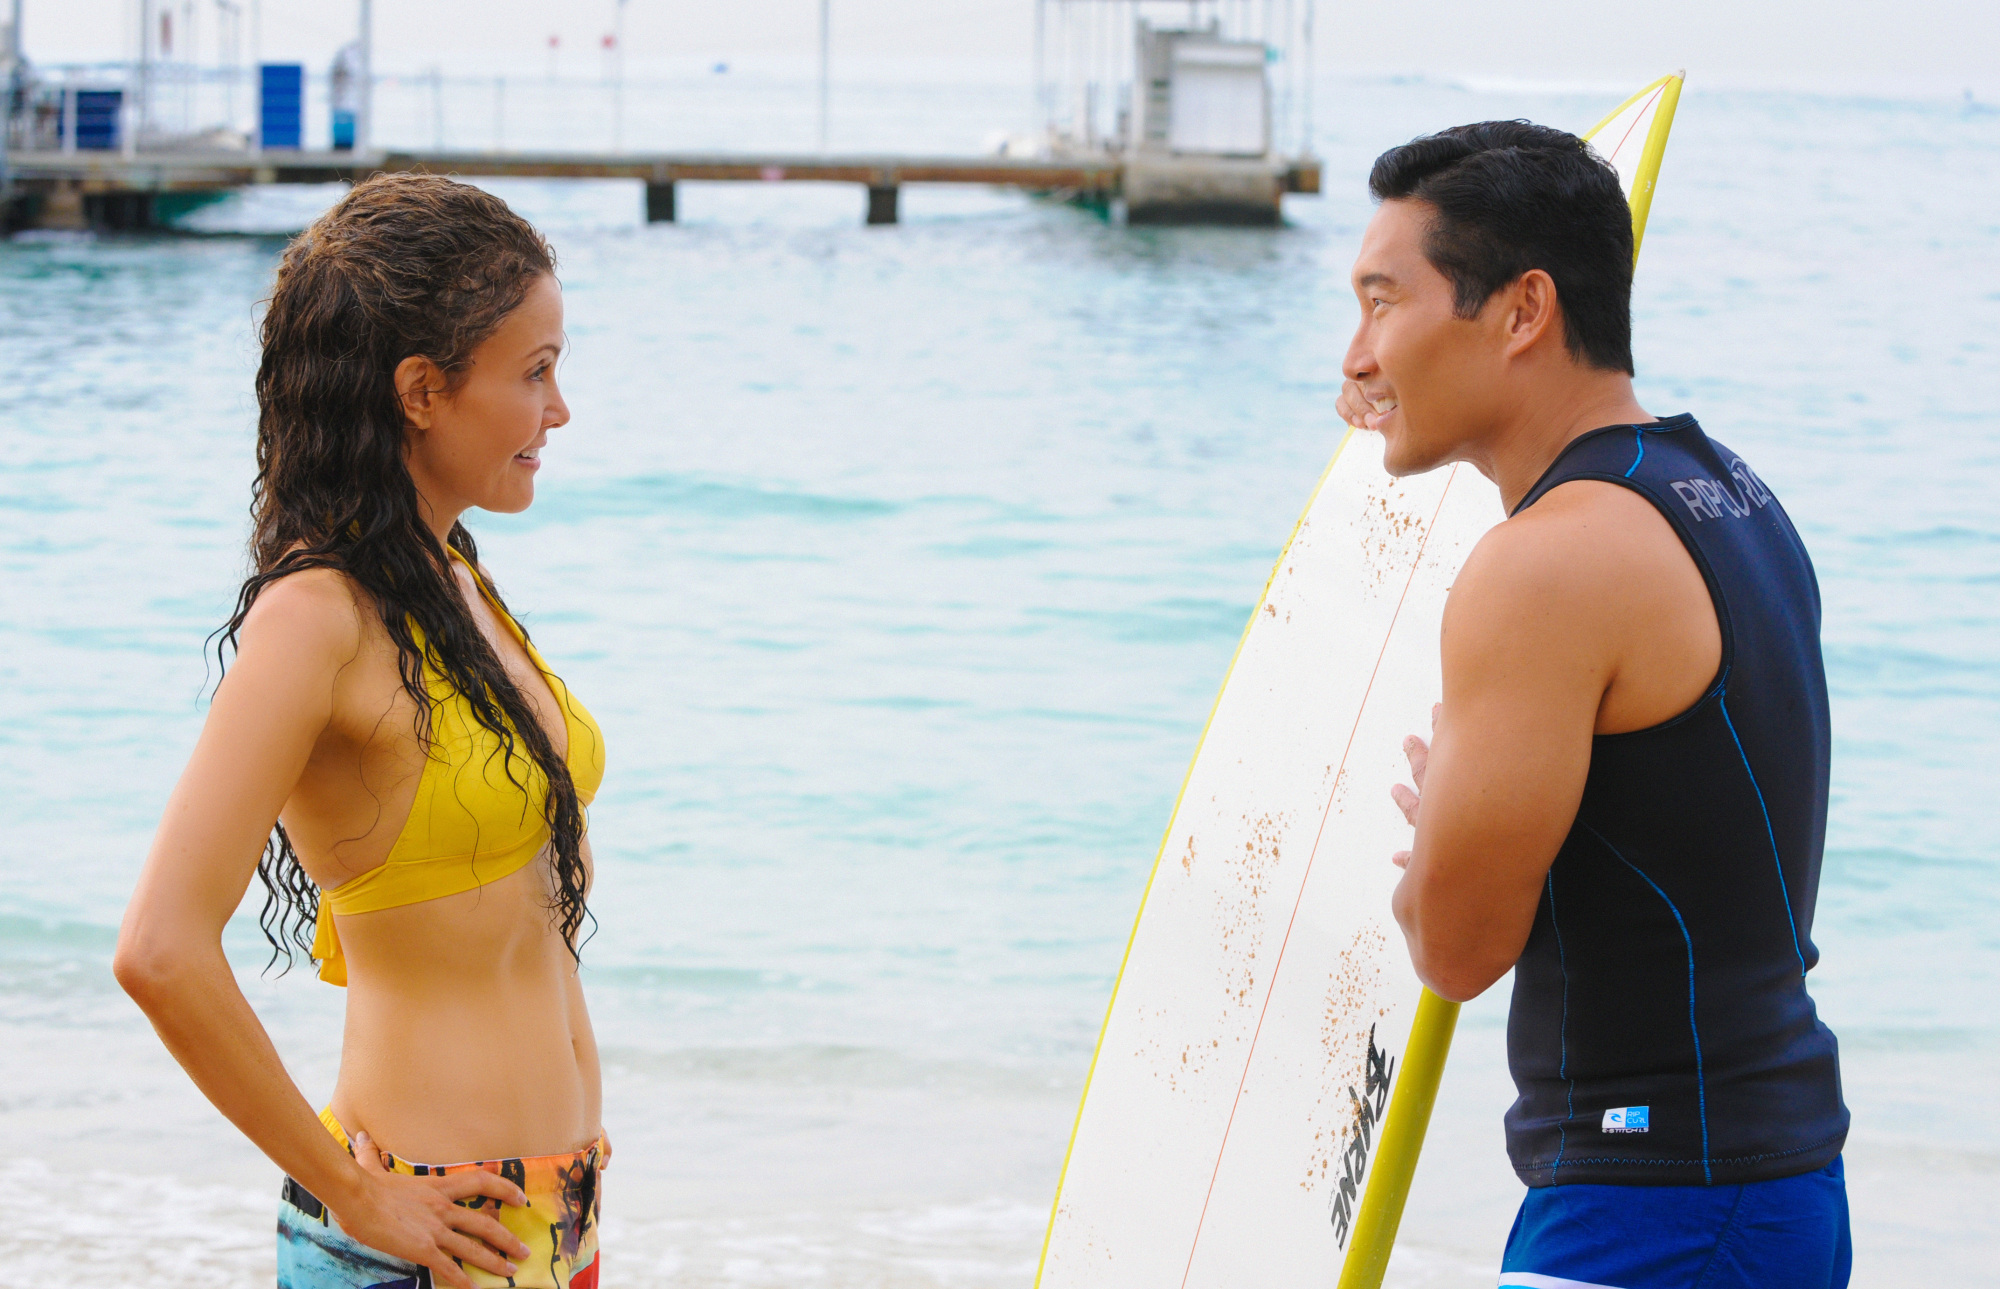 Surf Lessons in Season 4 Episode 13